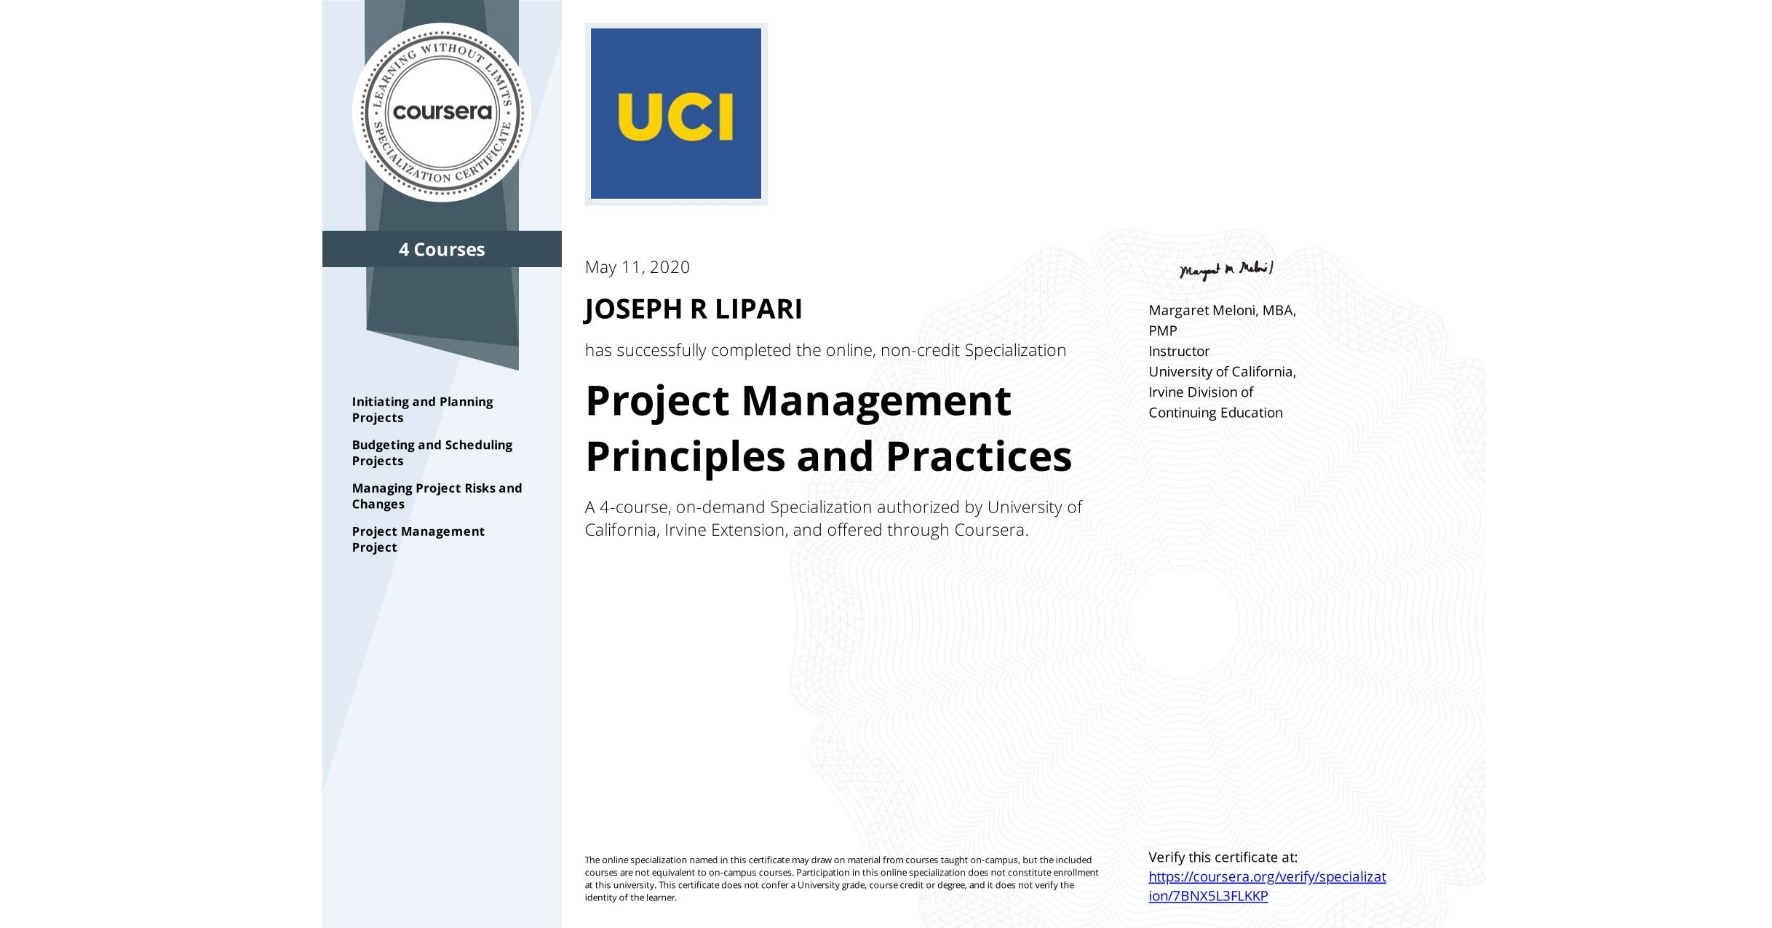 View certificate for JOSEPH R  LIPARI, Project Management Principles and Practices, offered through Coursera. A 4-course, on-demand Specialization authorized by University of California, Irvine Extension, and offered through Coursera.